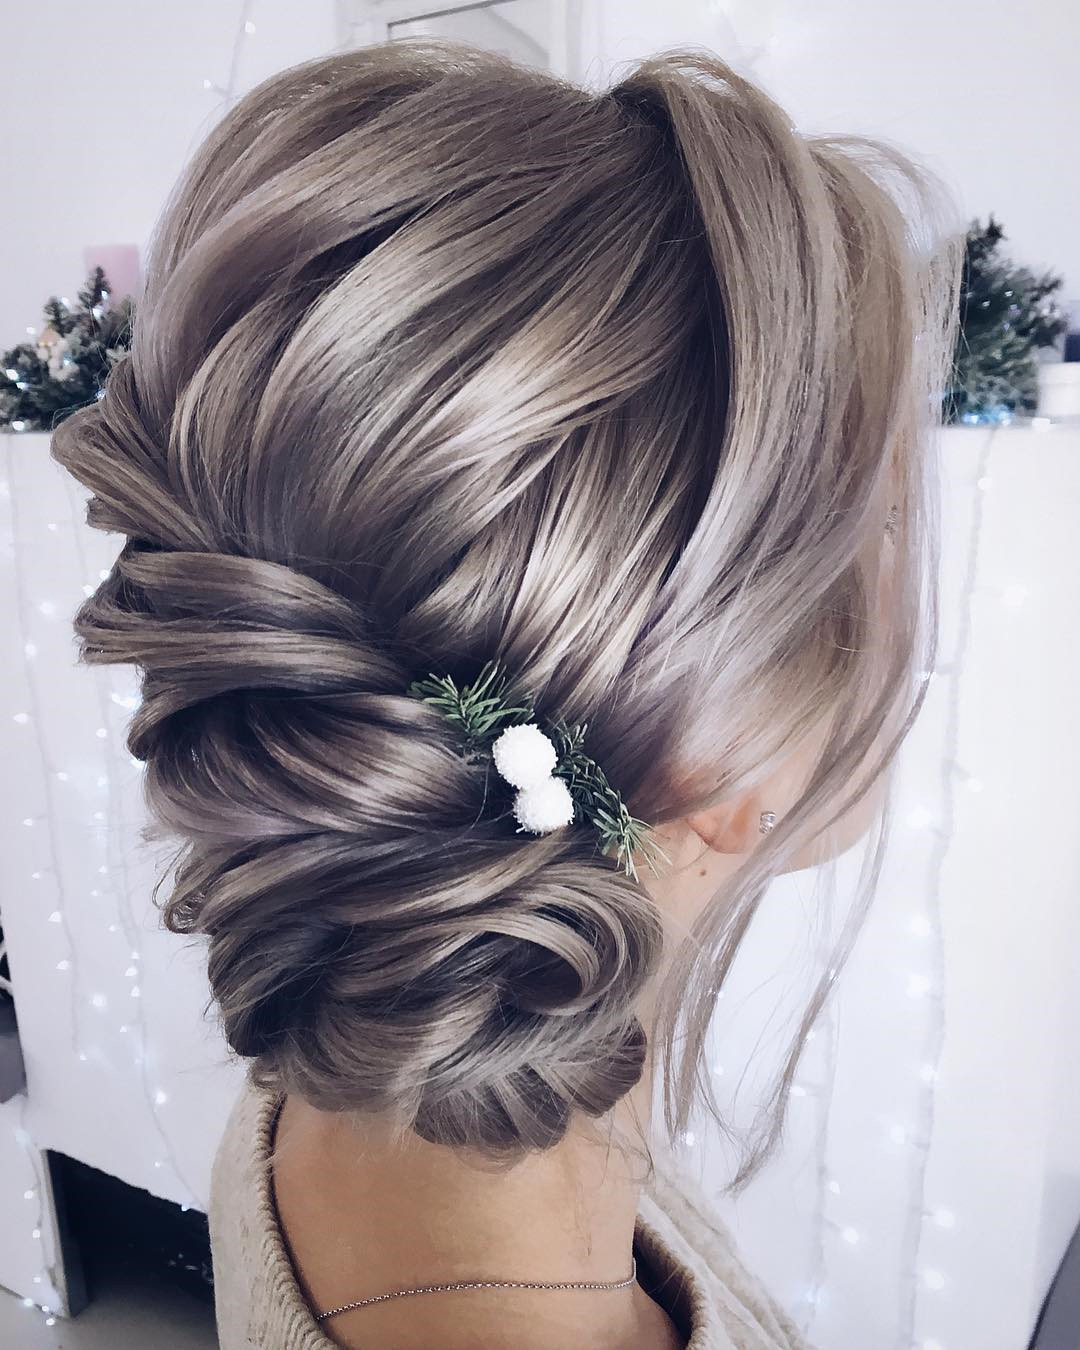 46 Gorgeous Updos Wedding Hairstyles ideas #WeddingHairstyles  #Updos #UpdoHairstyles